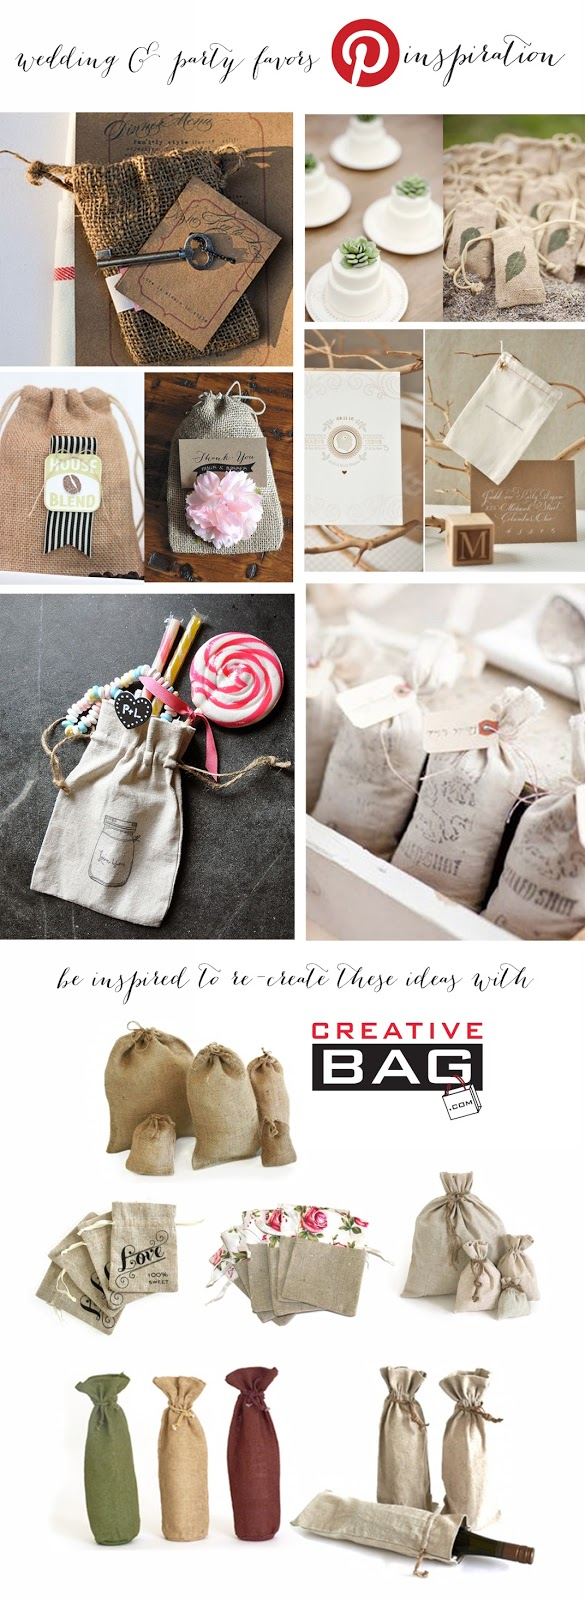 wedding and party favor inspiration using burlap and line  from Creative Bag